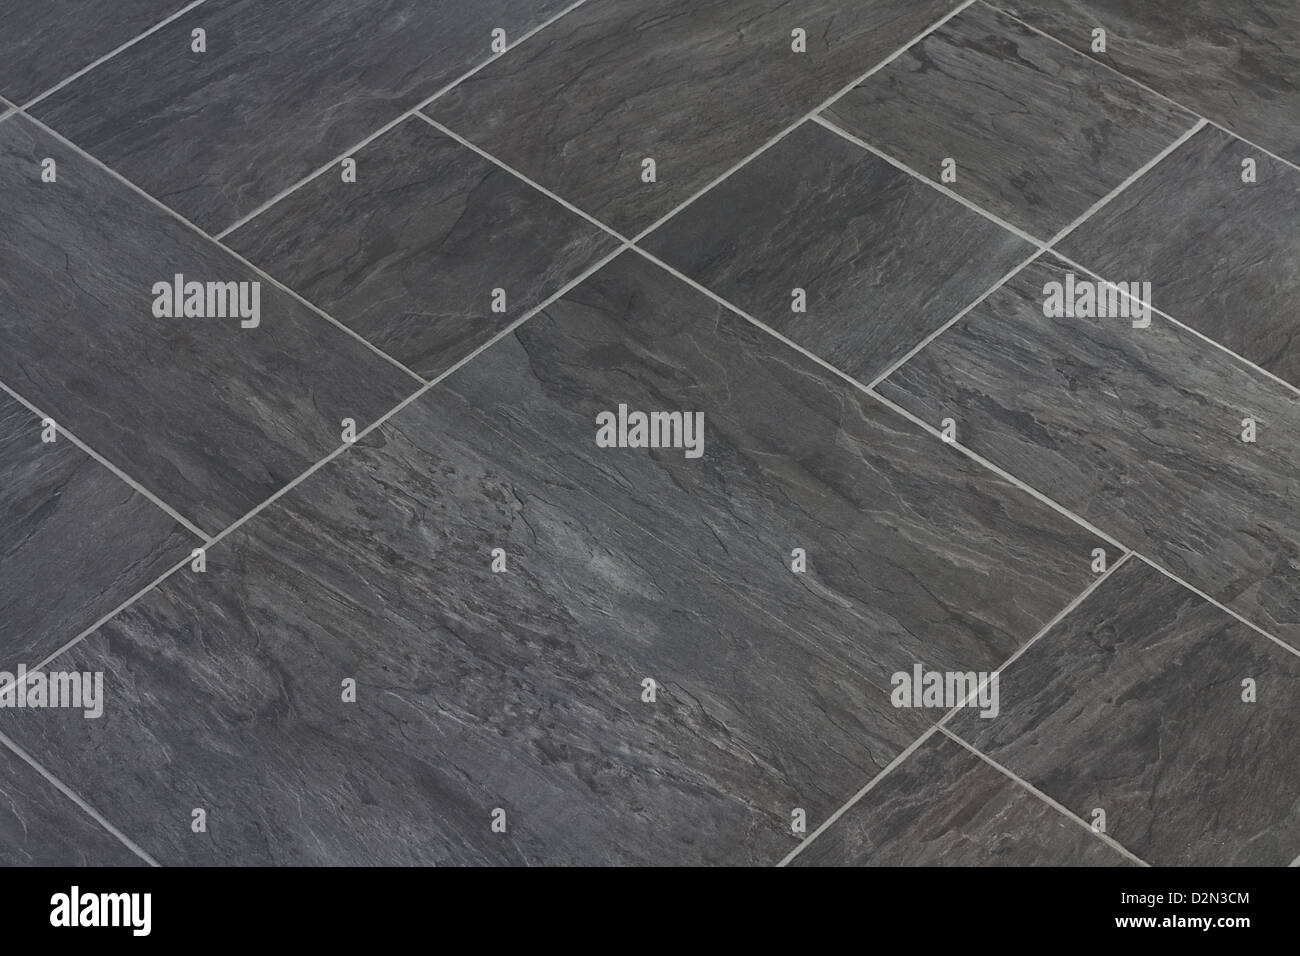 Slate texture vinyl flooring a popular choice for modern kitchens and bathrooms - Stock Image